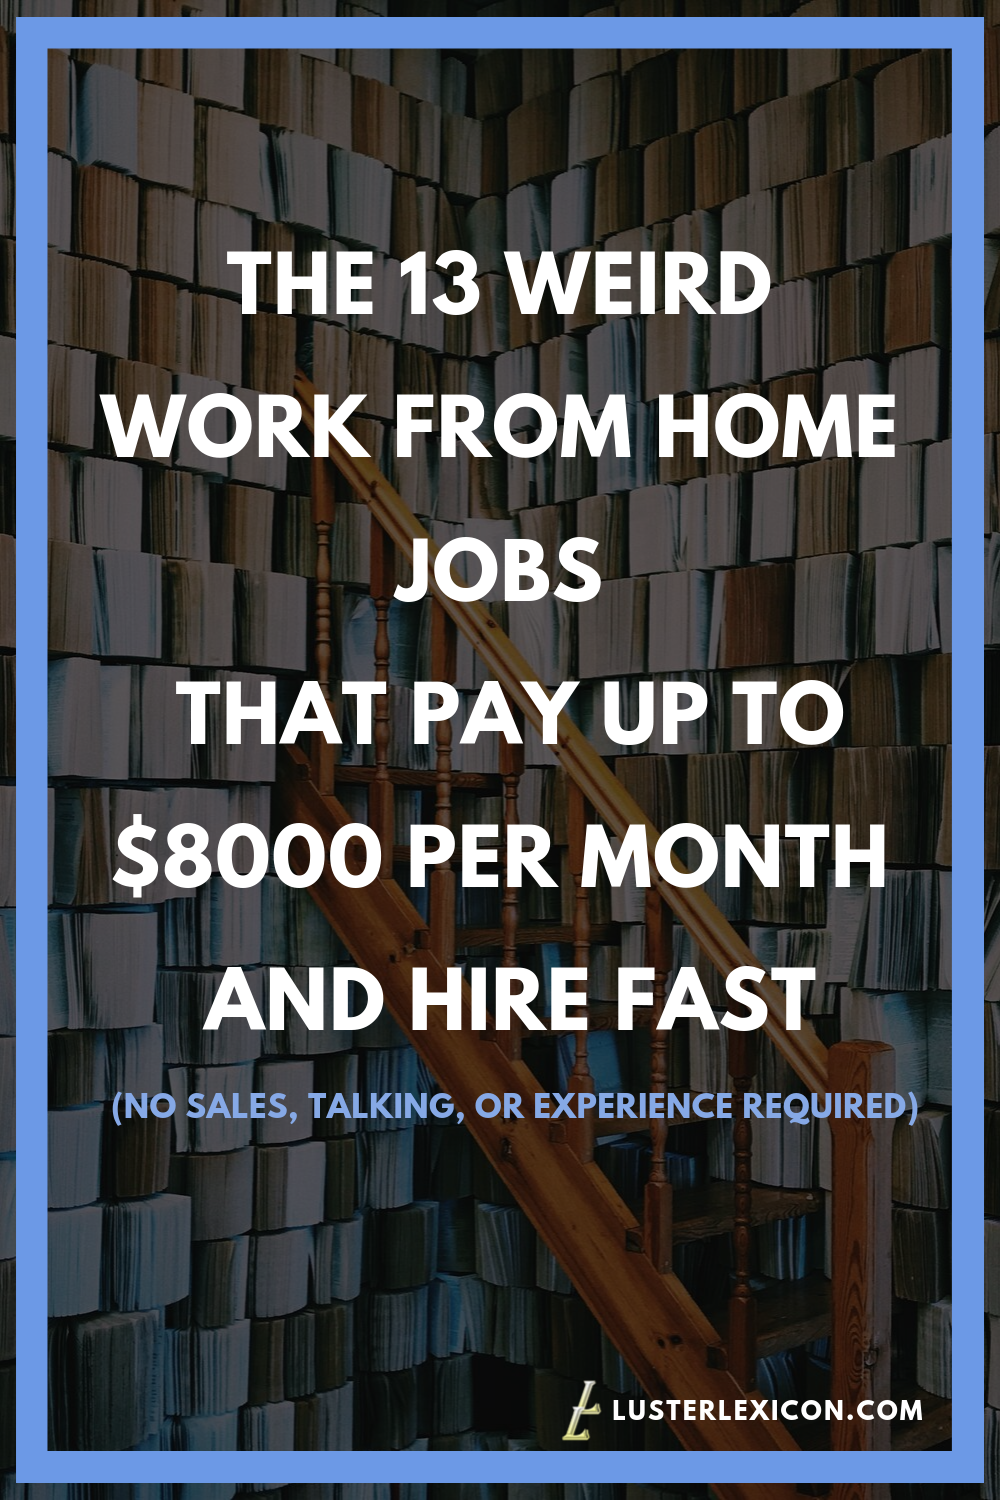 THE 13 WEIRD WORK FROM HOME JOBS THAT PAY UP TO $8